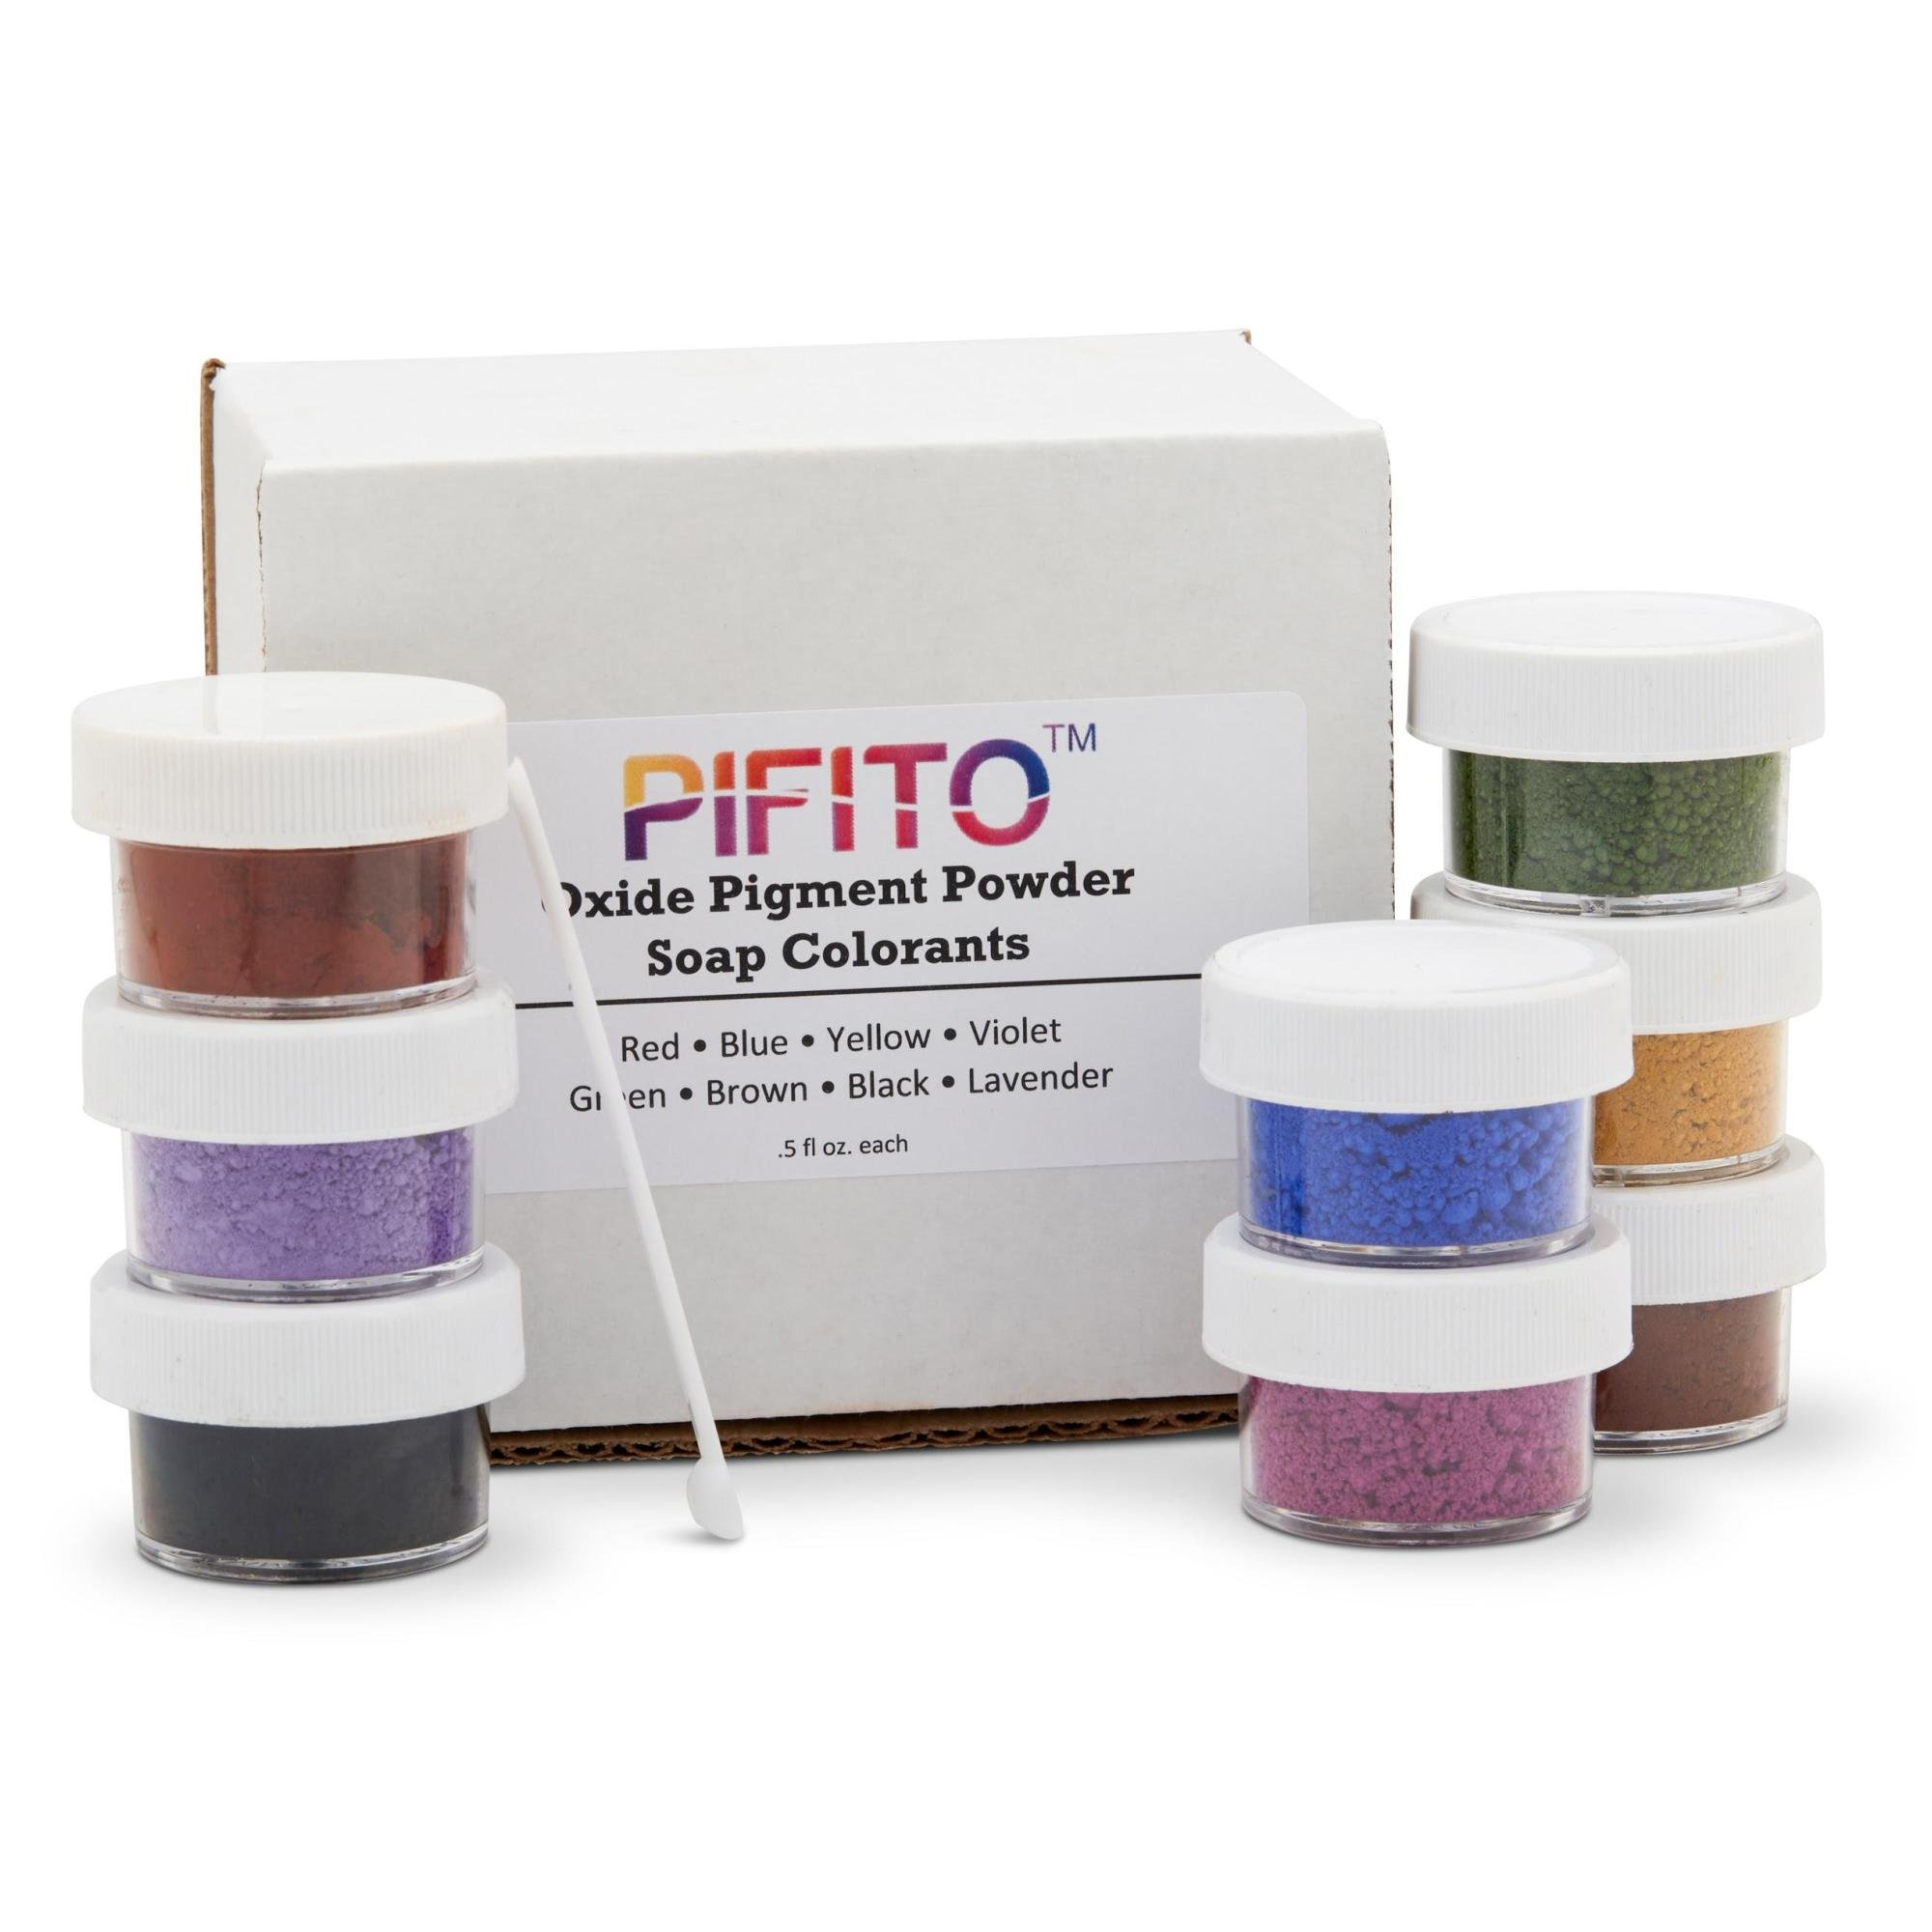 Premium Oxide Pigment Powder Colorants Set - 8 Beautiful Colors for Hand Soap Making Kit (.5 oz ea) - Red, Blue, Yellow, Lavender, Green, Brown, Black, Violet - Non Bleeding Colorant